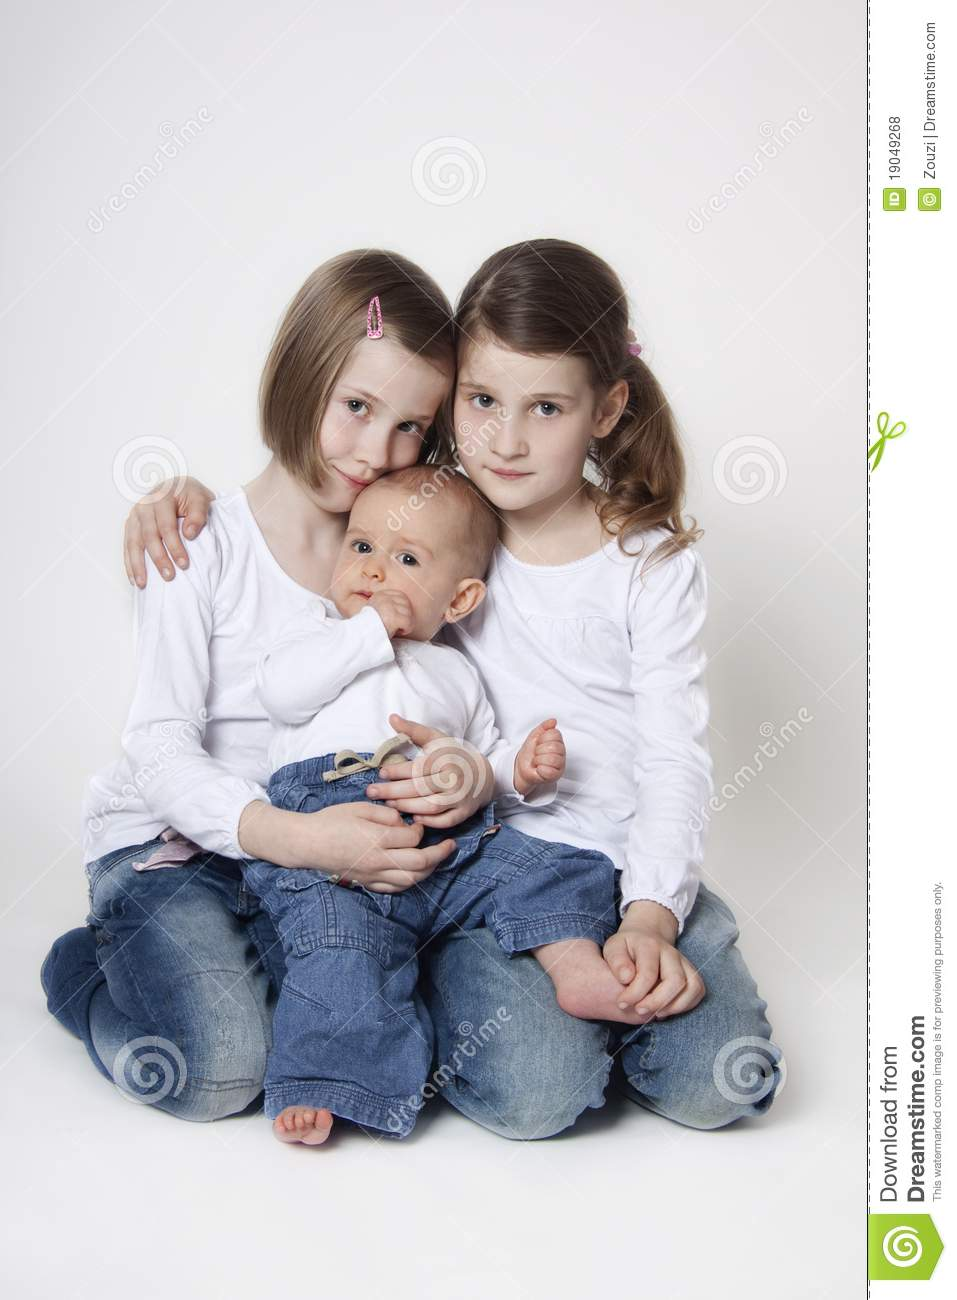 twin sisters with baby boy brother stock photo image of girl background 19049268. Black Bedroom Furniture Sets. Home Design Ideas